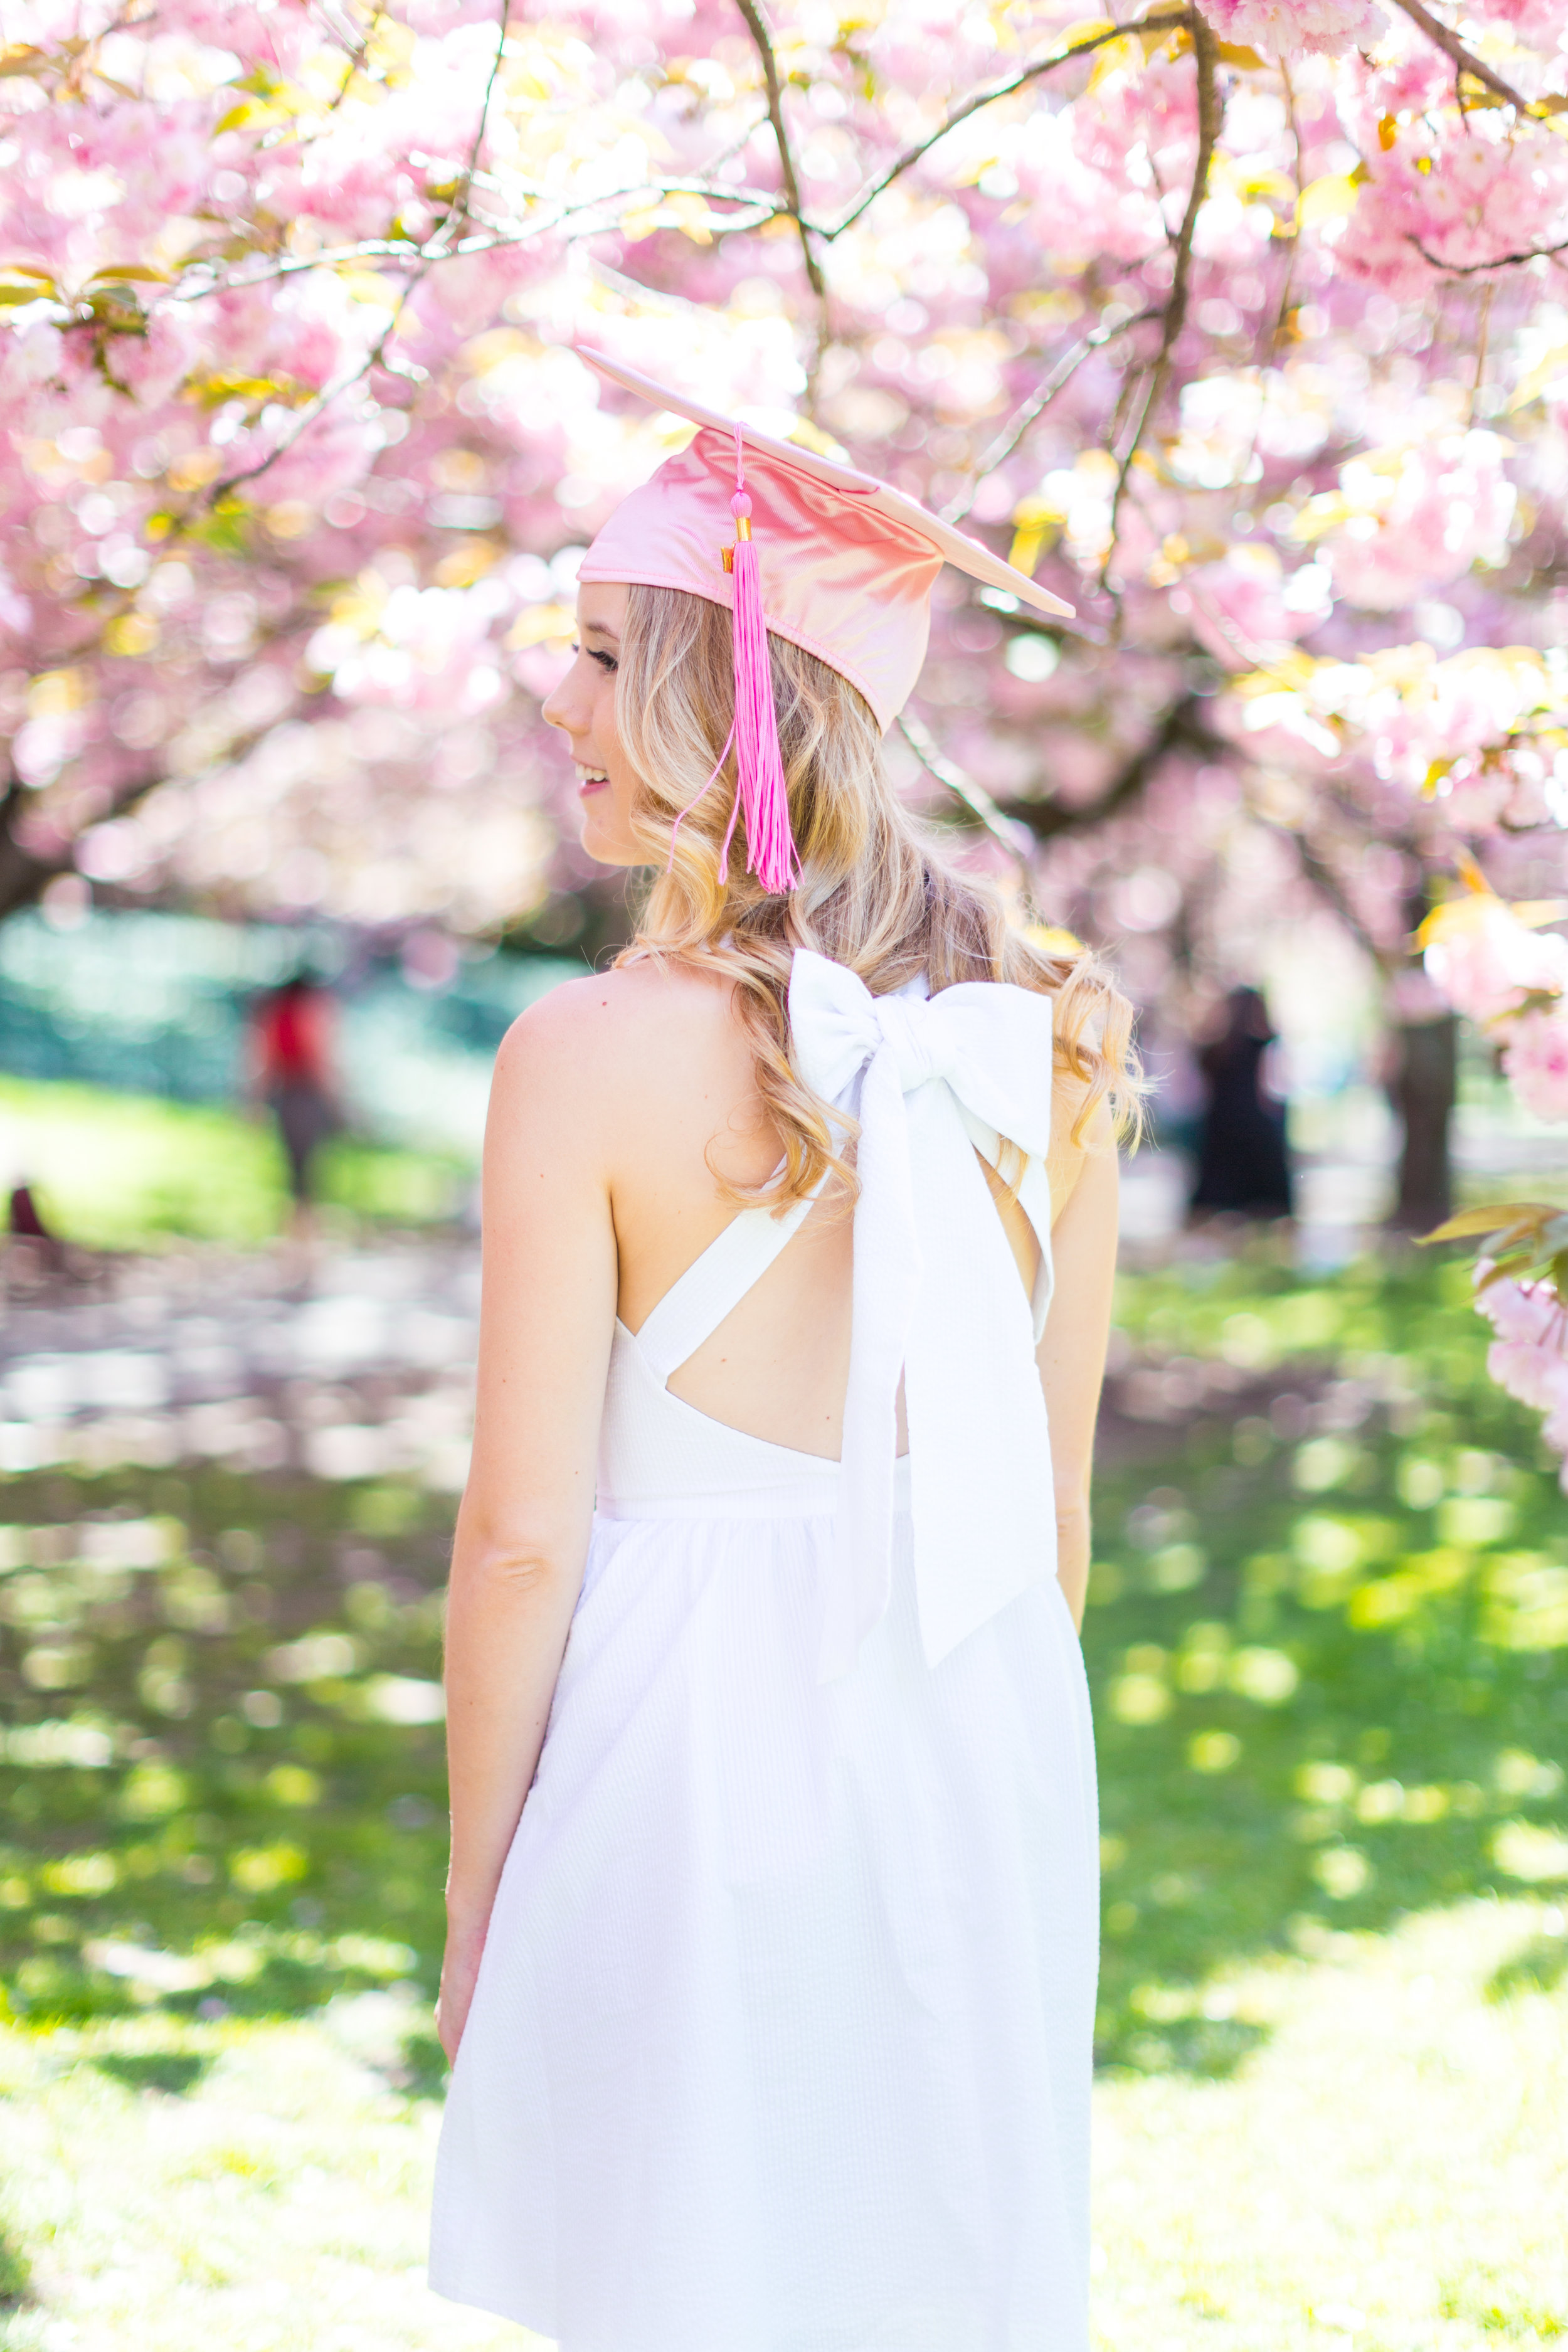 White Graduation Dress Spring Pink Cherry Blossoms NYC-15.jpg